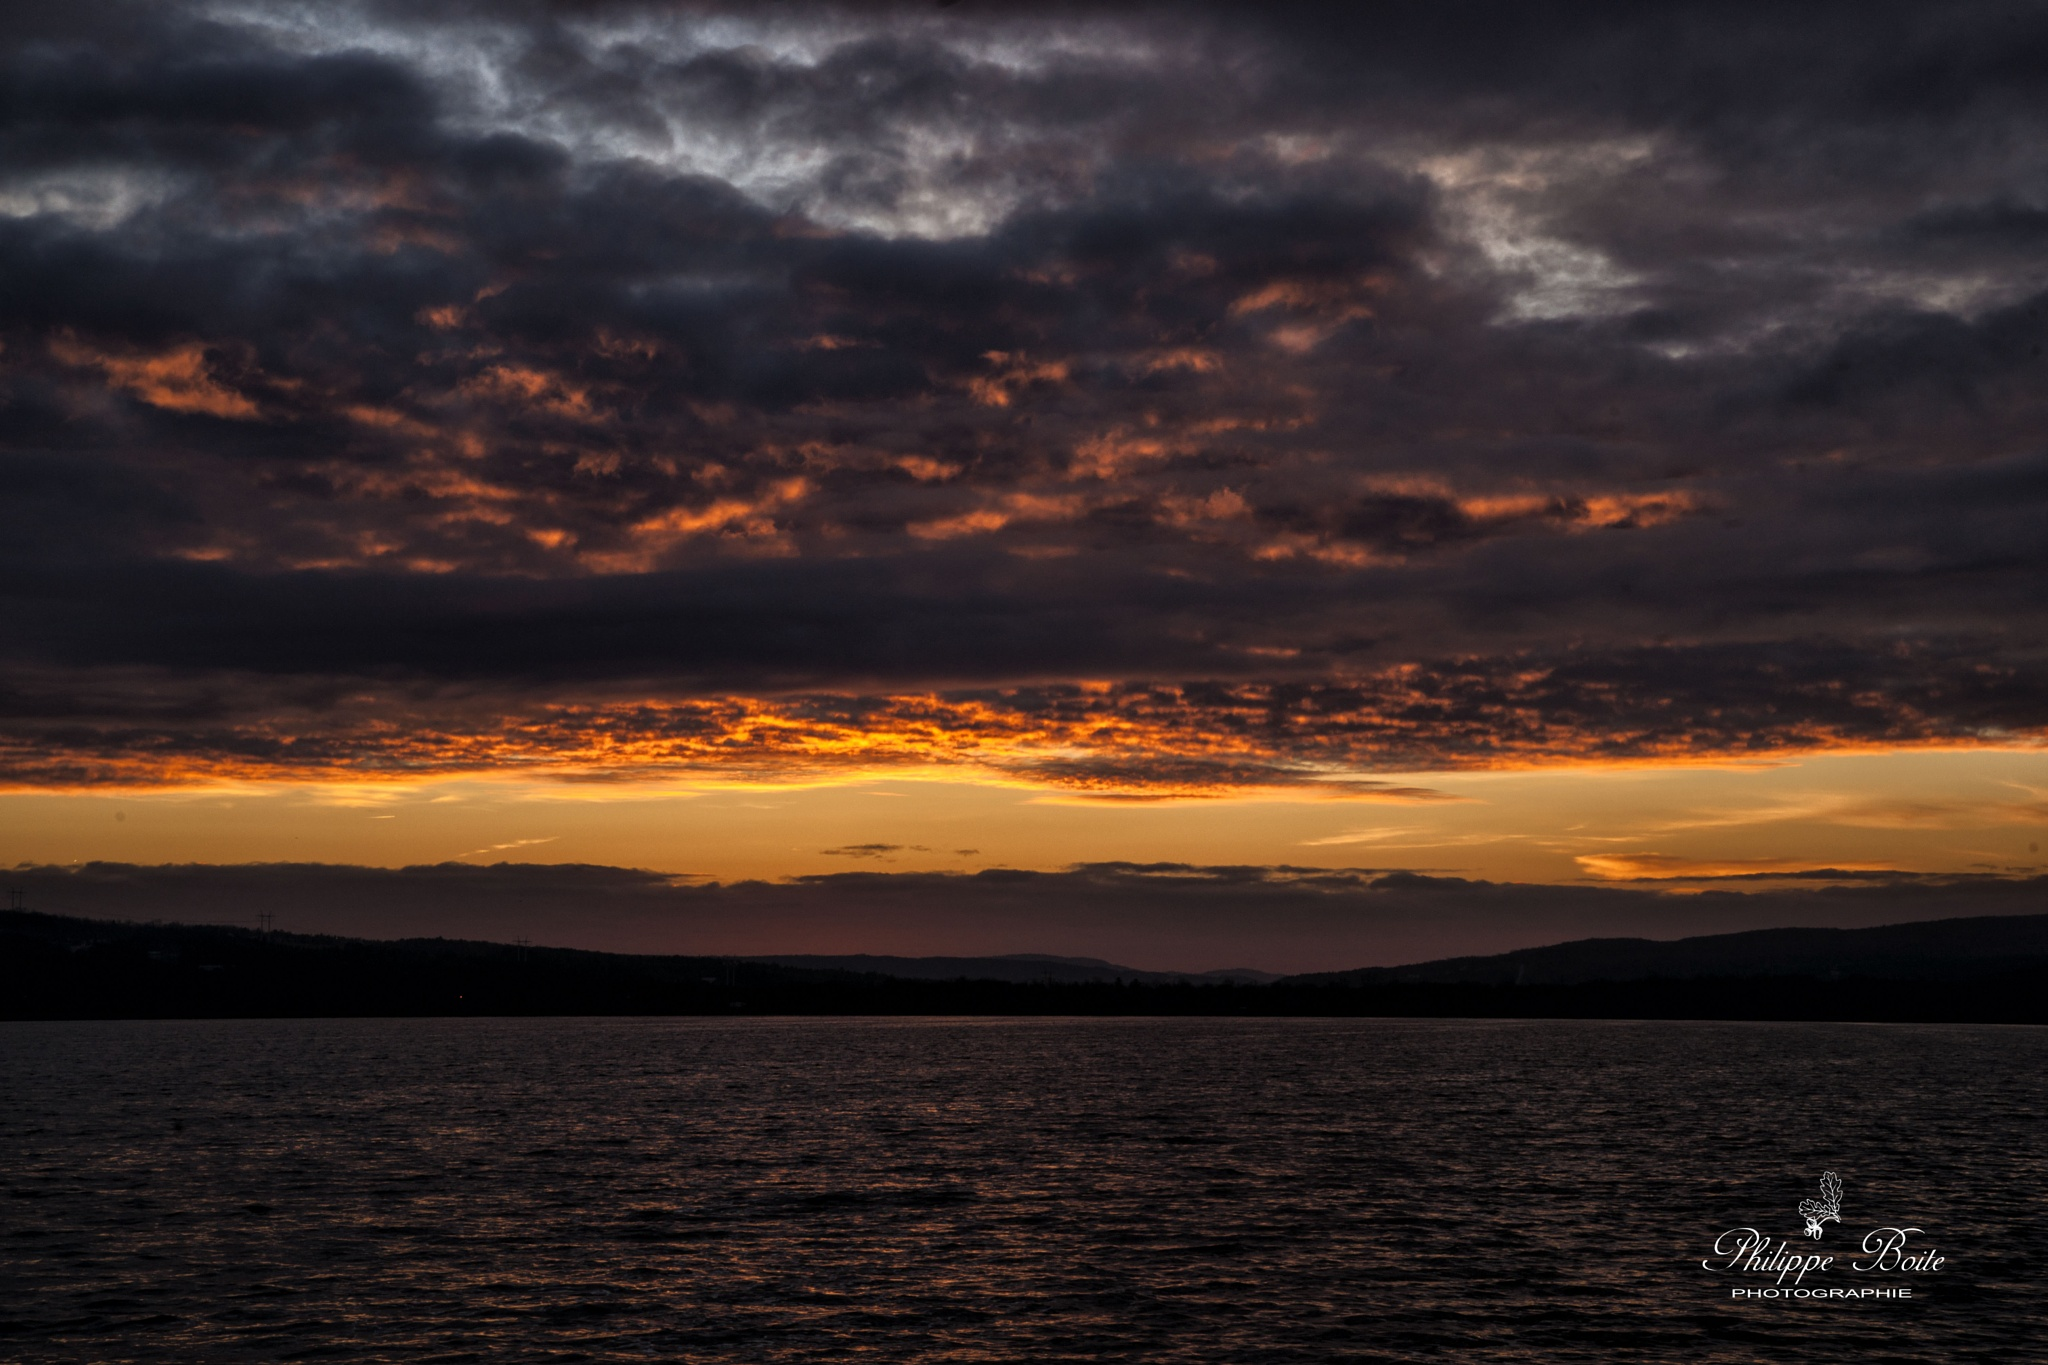 Another colourful sunrise by Philippe Boite